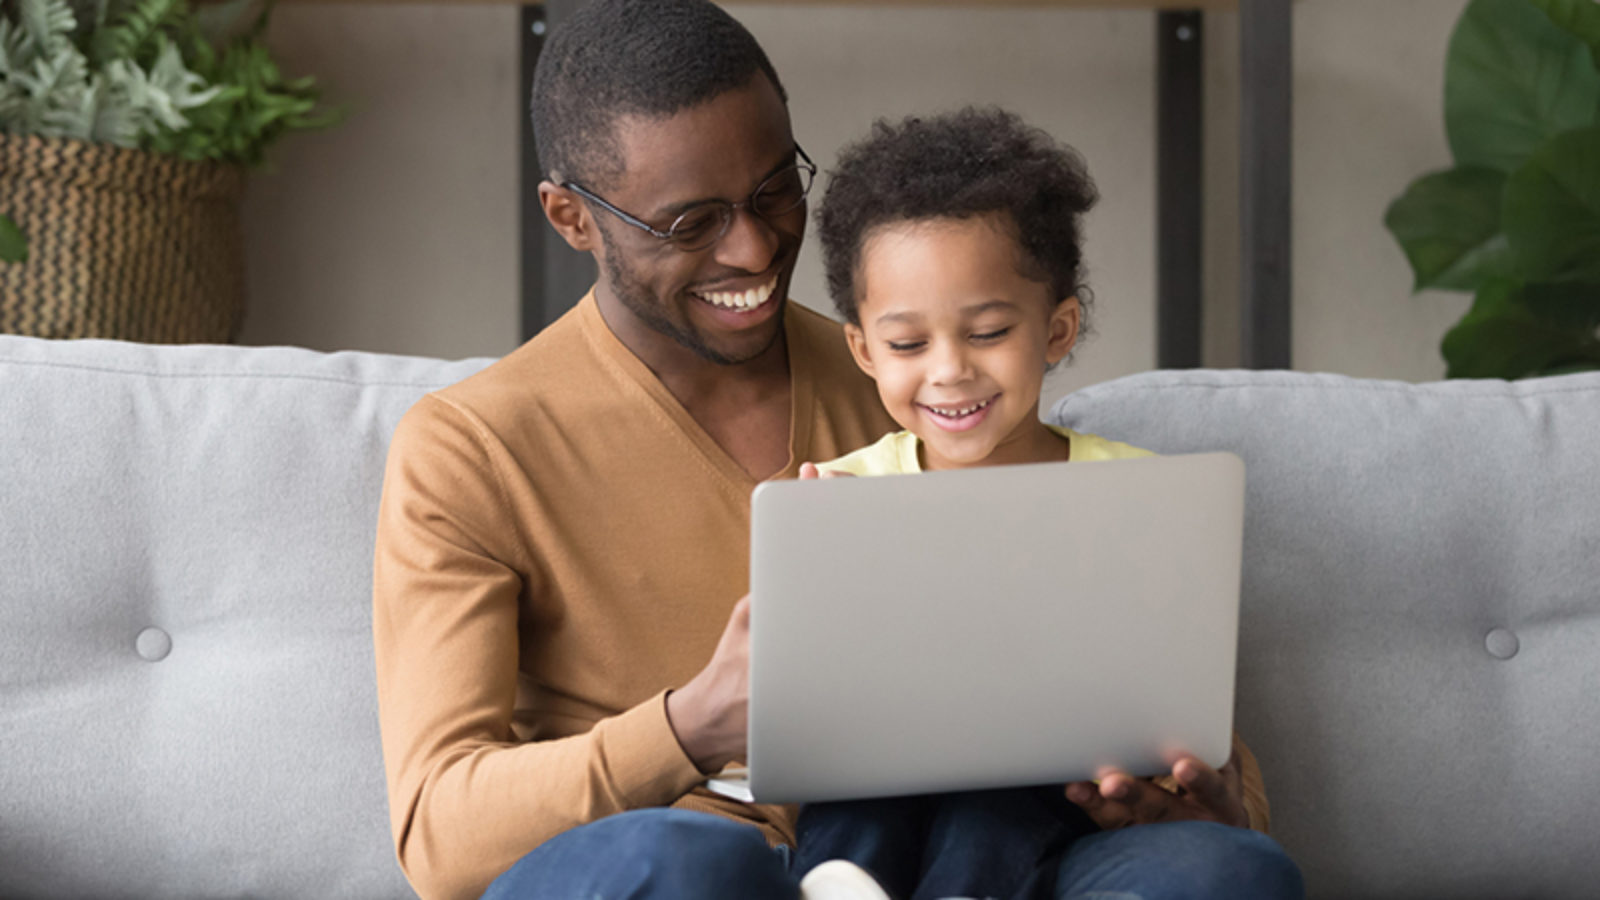 A father sits with a daughter on a sofa with the daughter holding a laptop, both are smiling